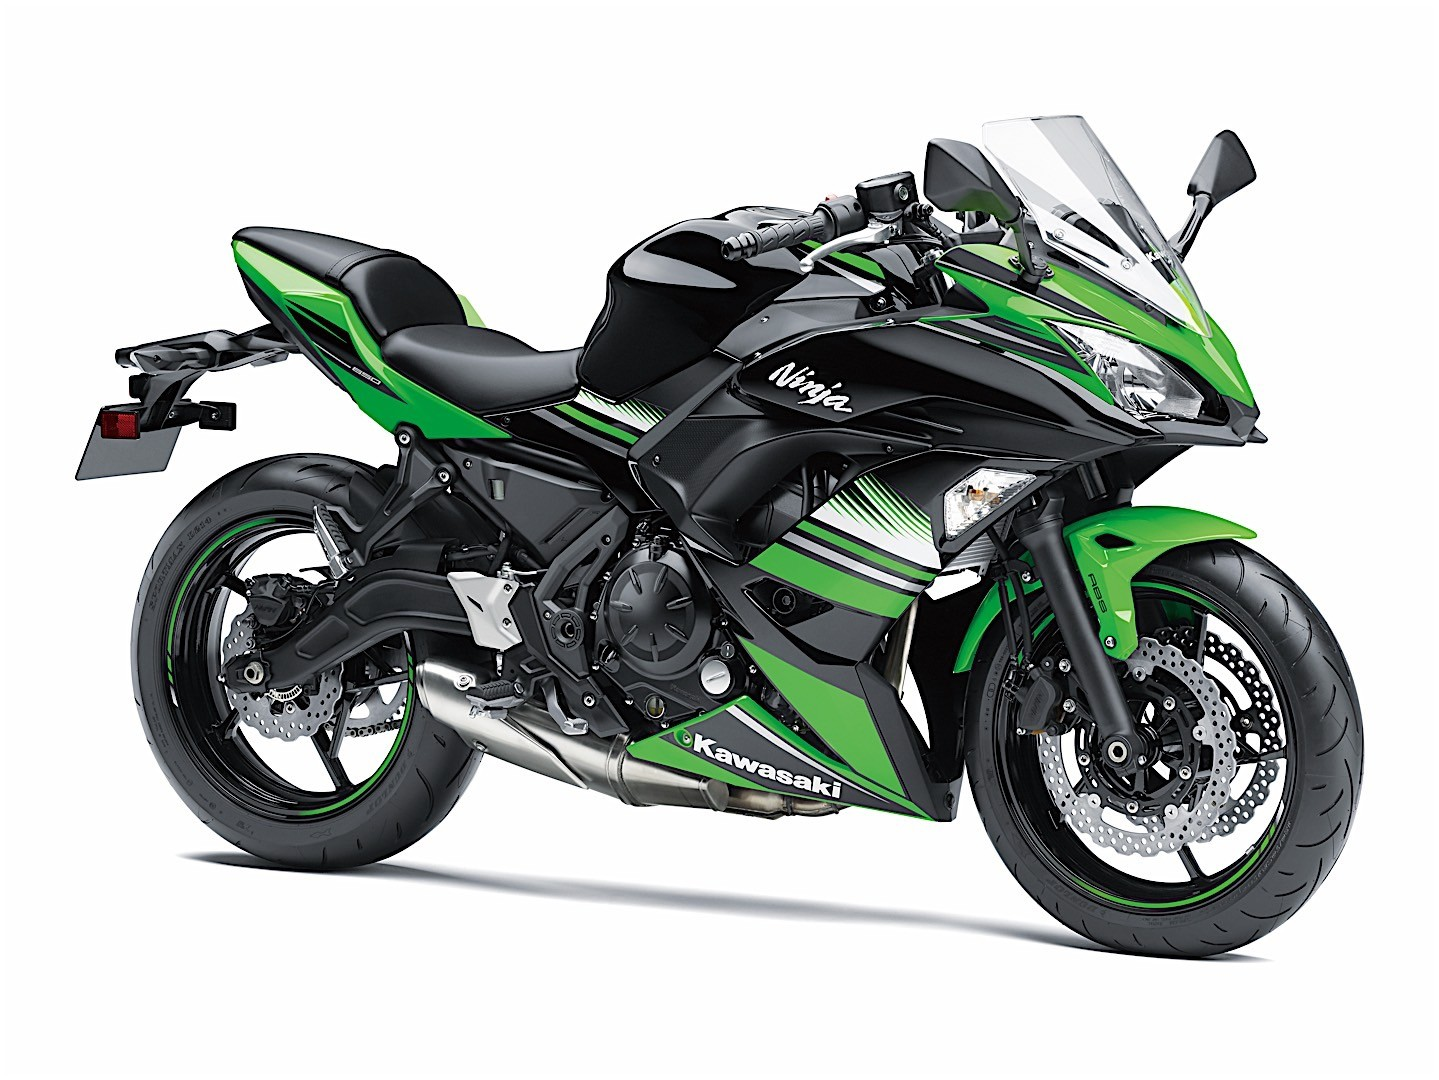 2017 Kawasaki Ninja 650 Revealed At Intermot Autoevolution